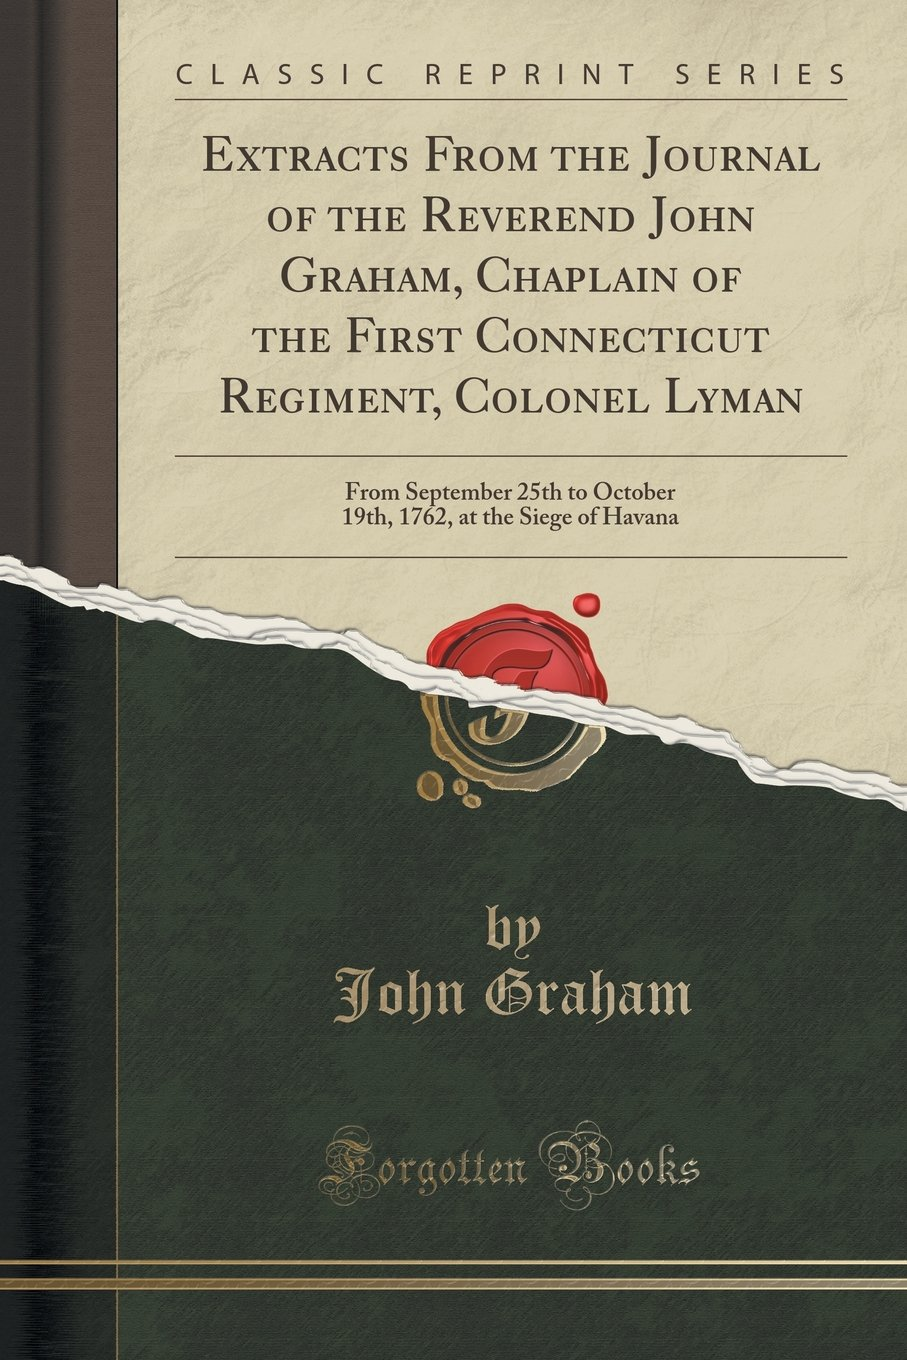 Extracts From the Journal of the Reverend John Graham, Chaplain of the First Connecticut Regiment, Colonel Lyman: From September 25th to October 19th, 1762, at the Siege of Havana (Classic Reprint)